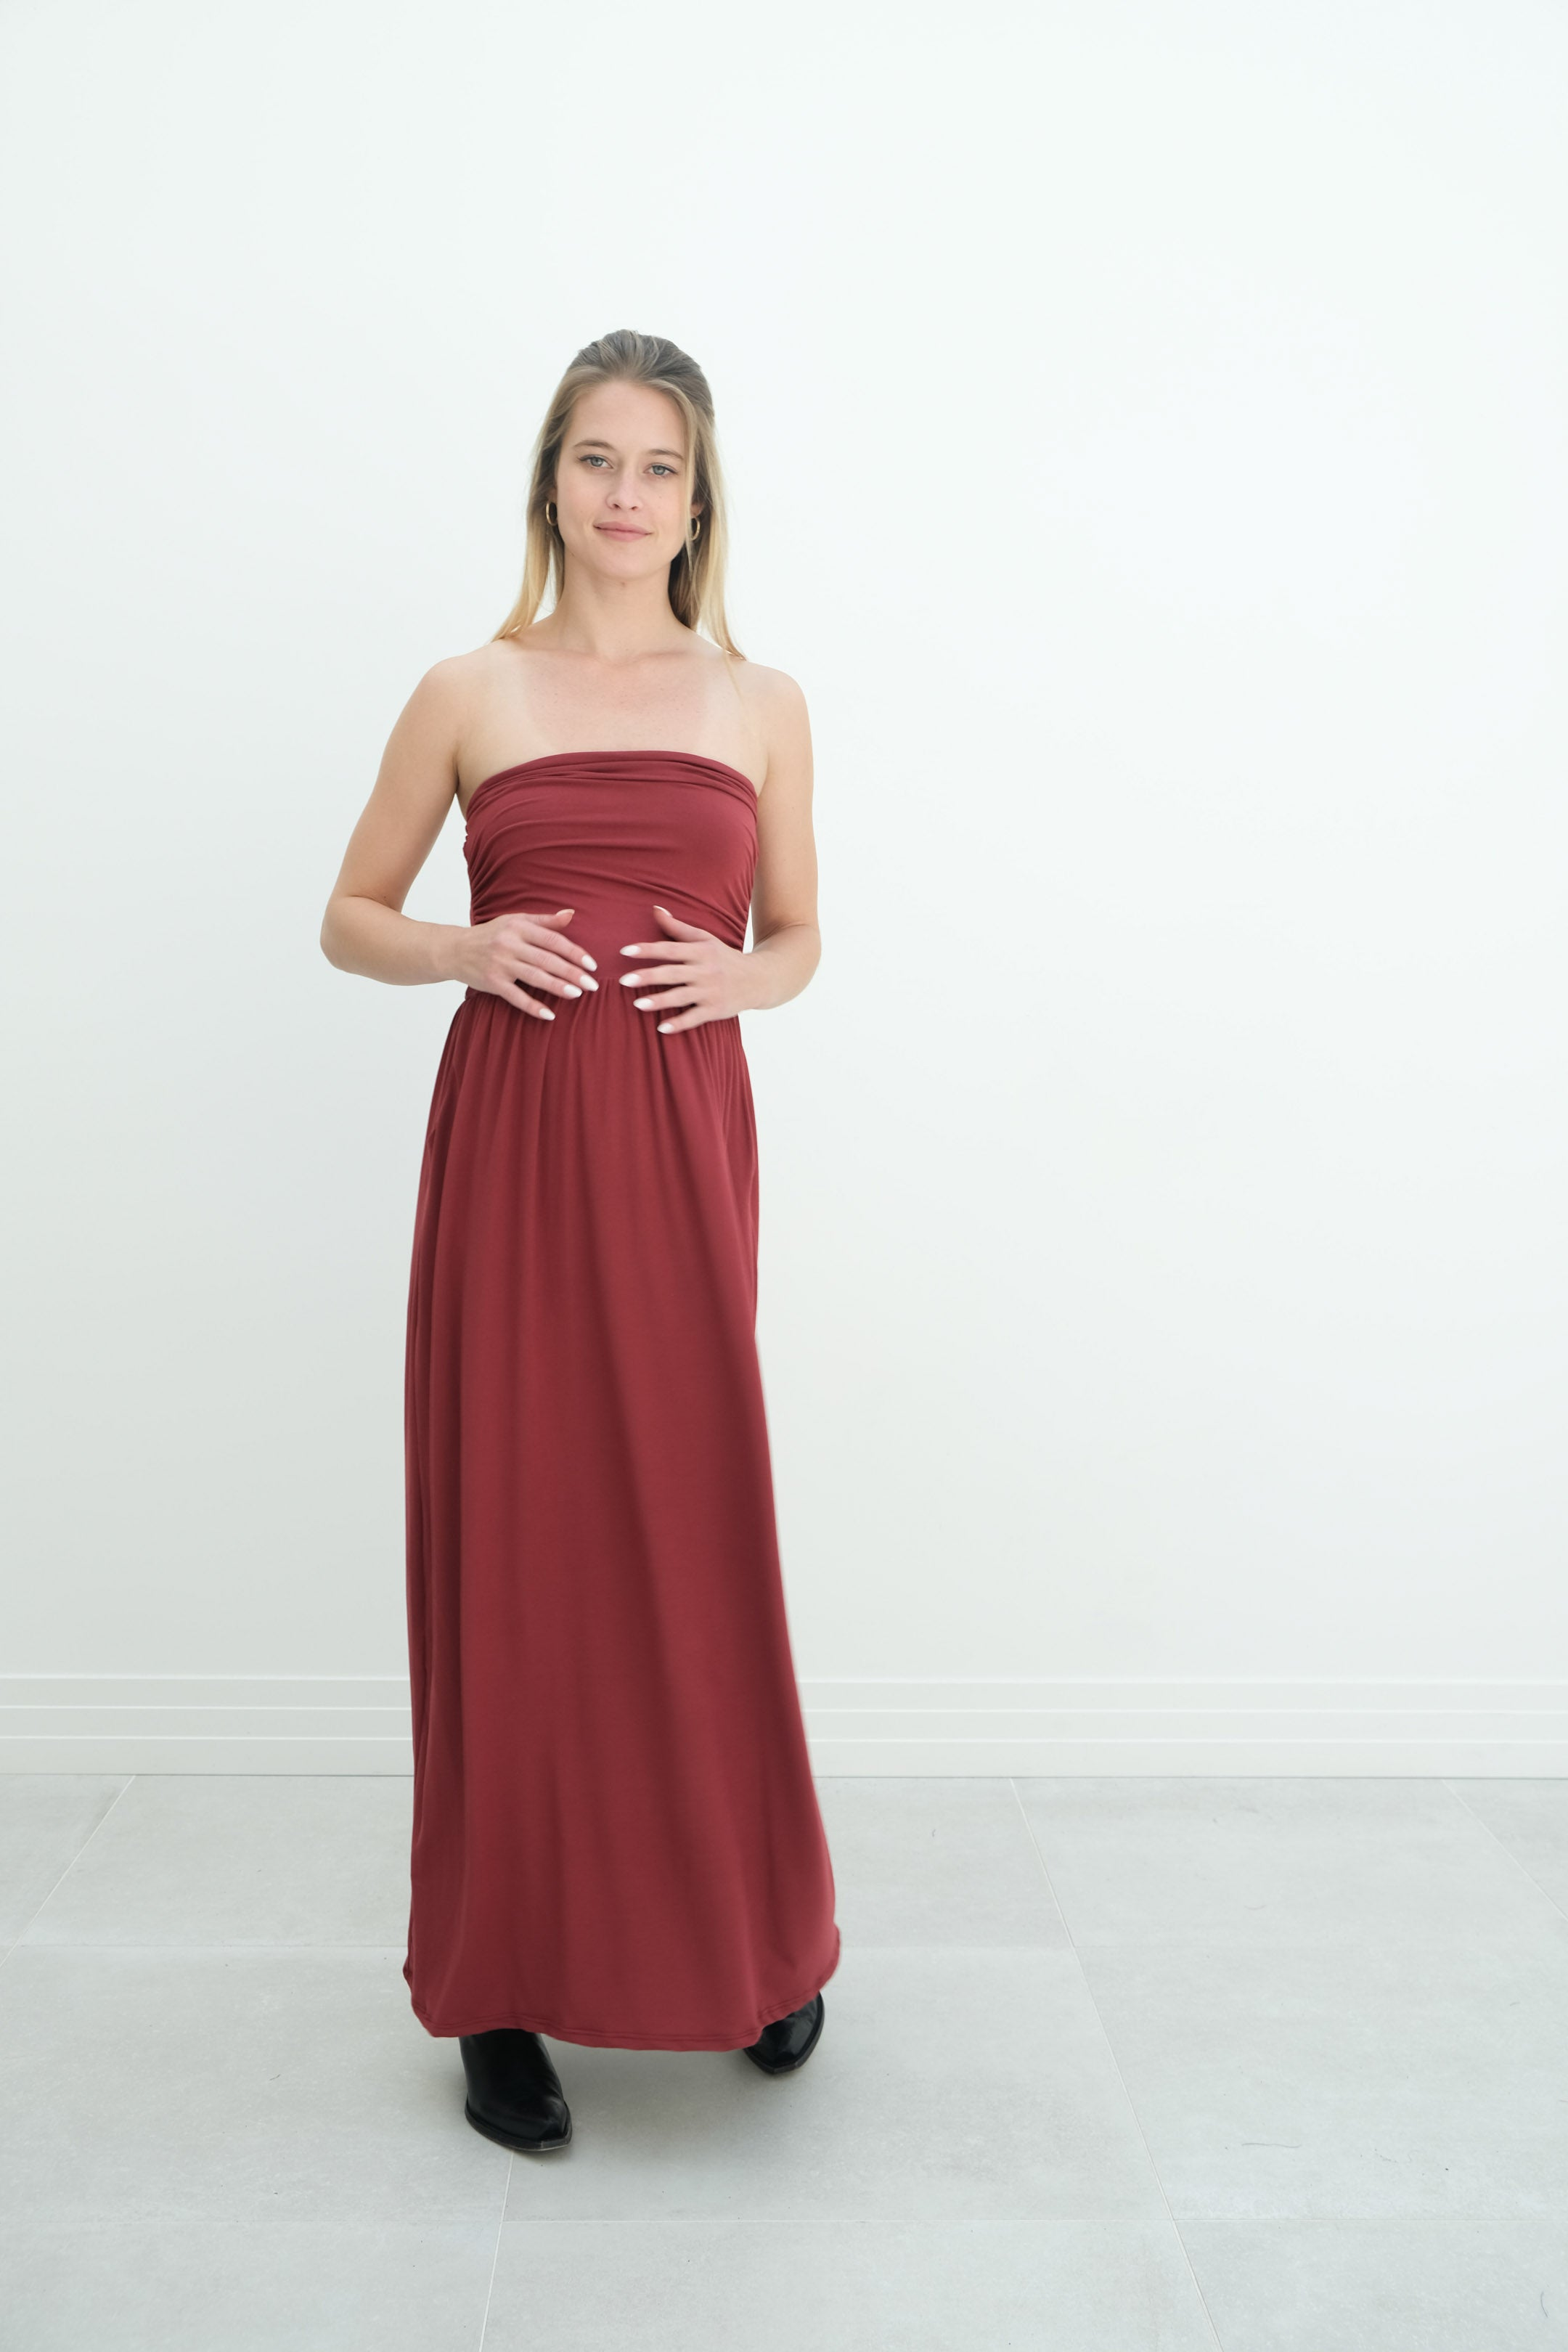 a lady wearing sasha bright red pregnancy gown